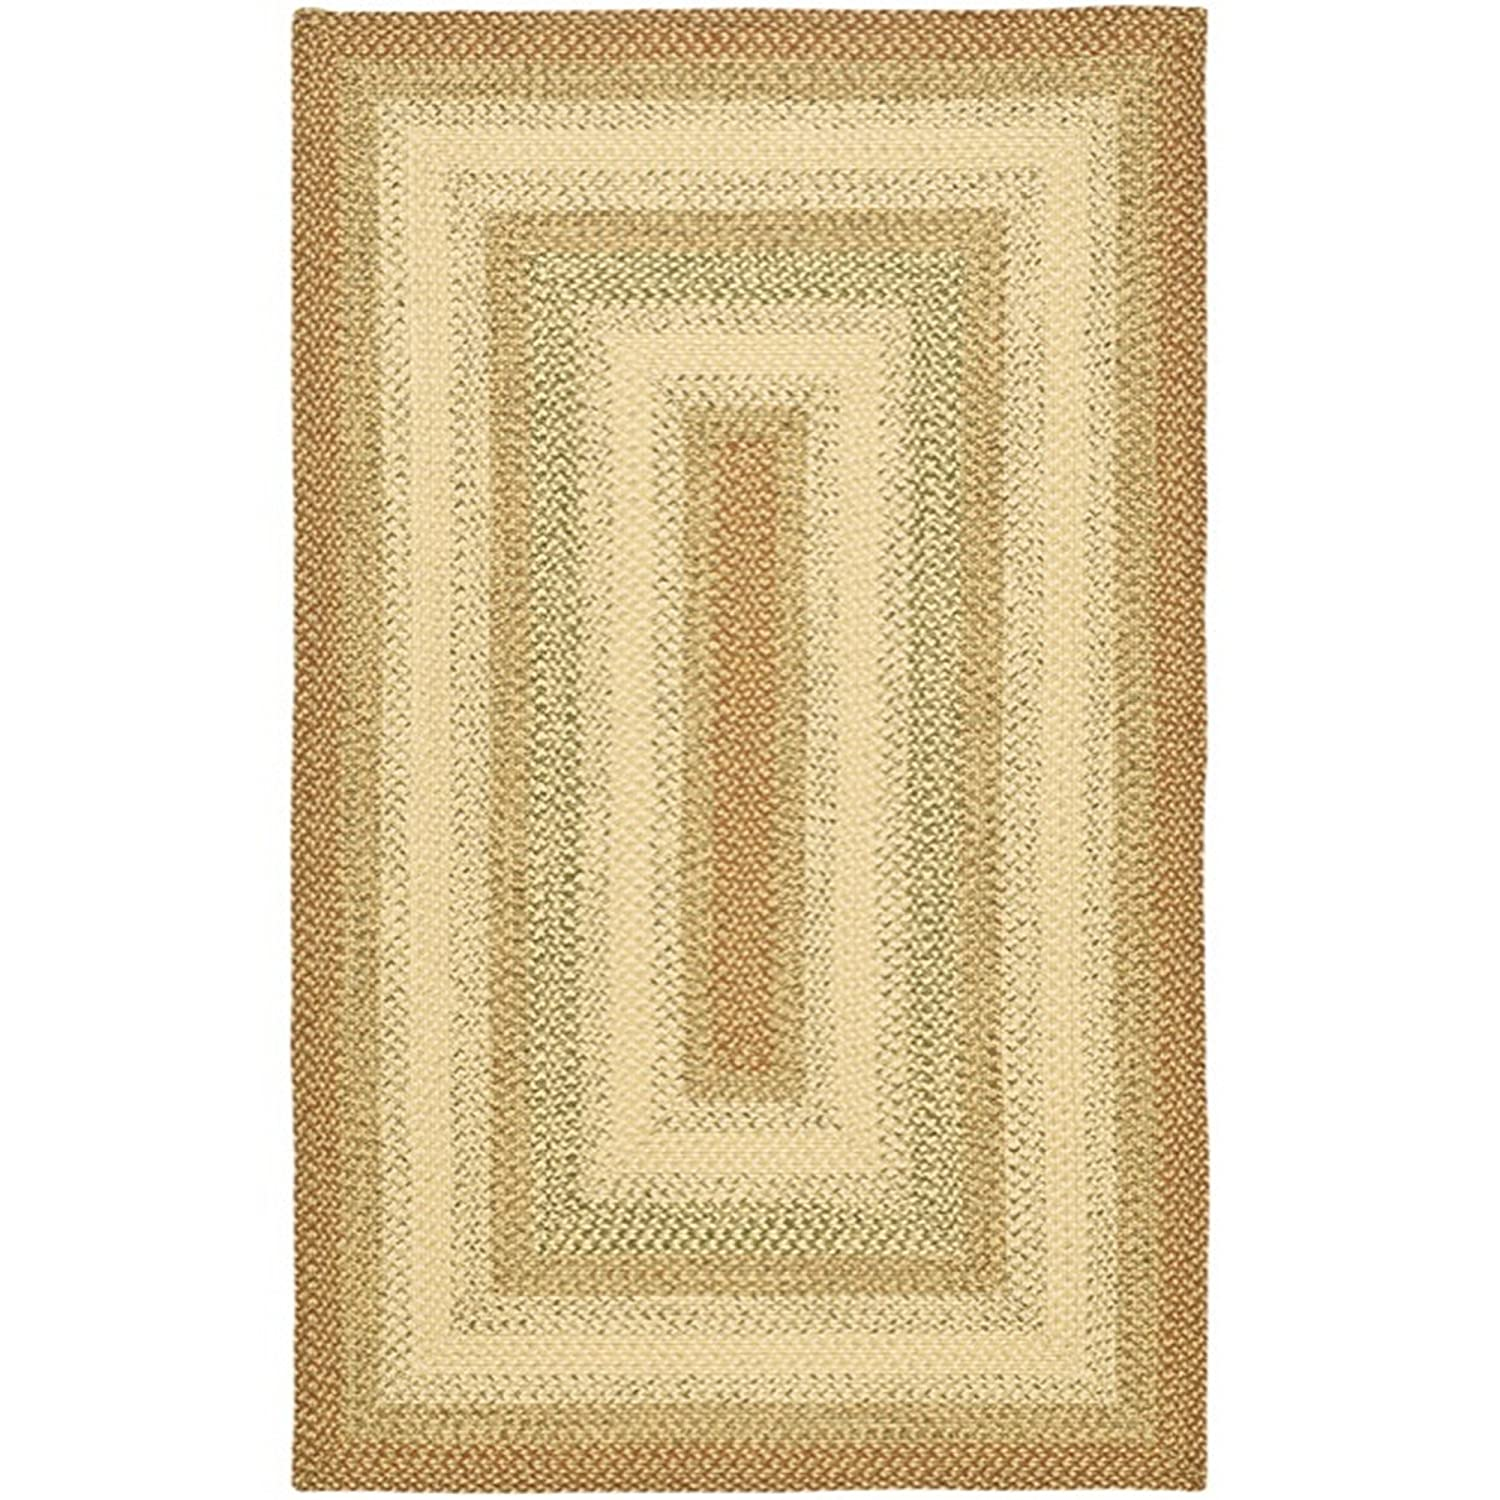 Safavieh Braided Collection BRD303A Hand Woven Rust and Multi Area Rug, 4 feet by 6 feet (4' x 6') BRD303A-4